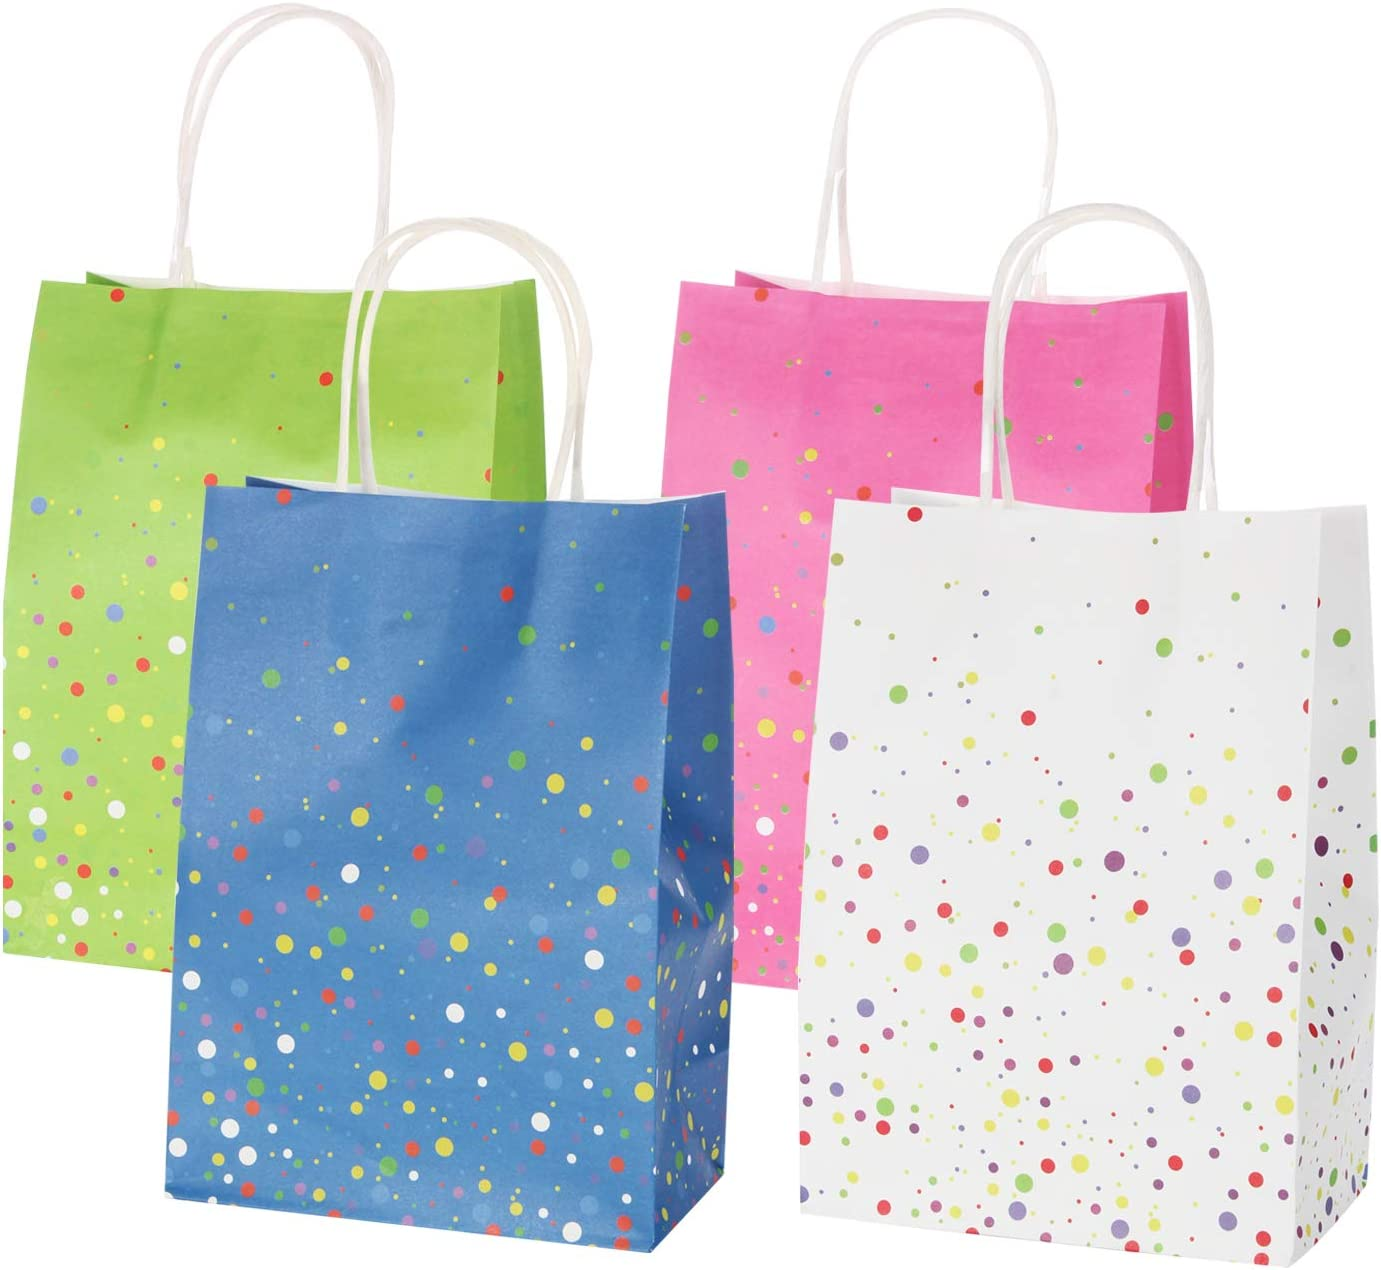 20 Gymnastics Grip Bags or Gift Bags Set Of 20 Wholesale Random Assortment or Lot lower price per bag and free shipping